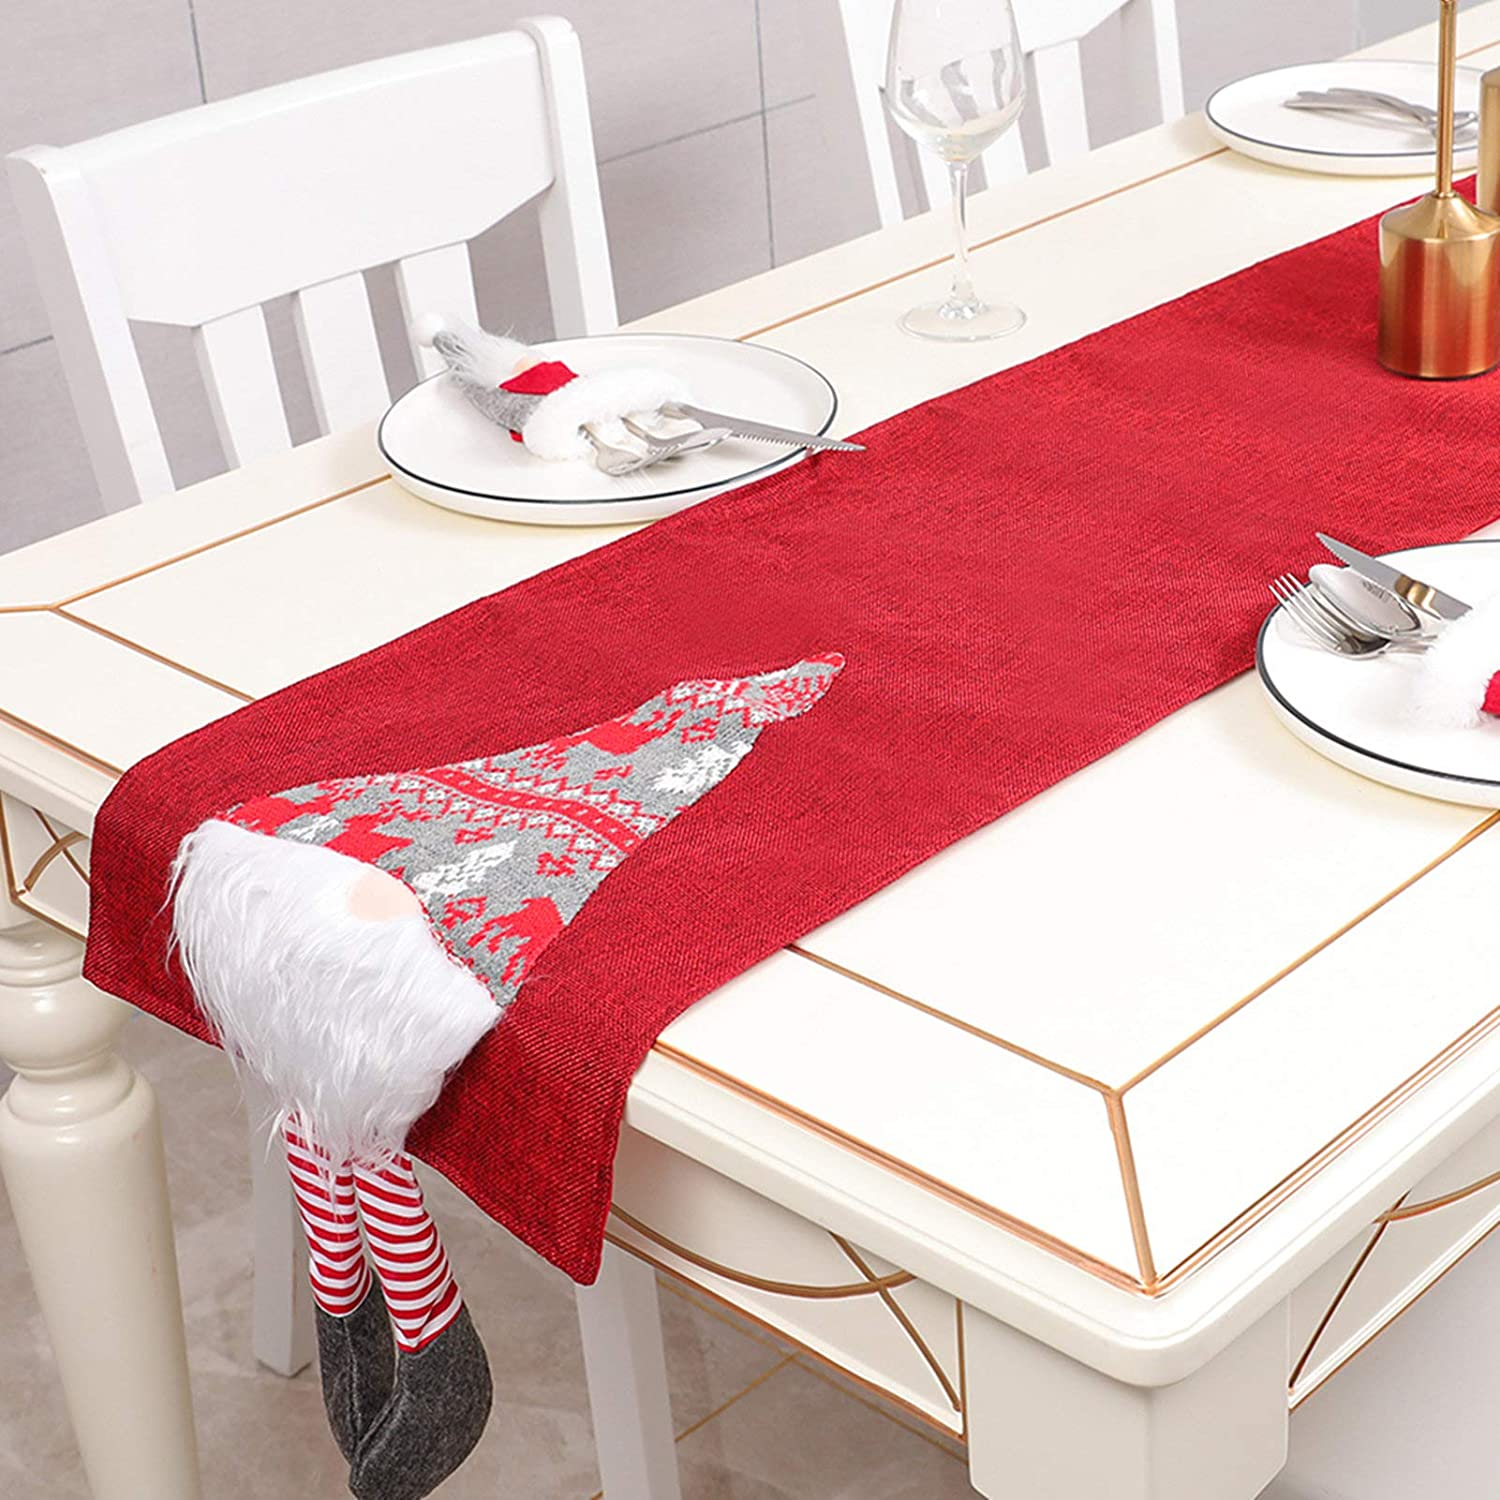 Cartoon Faceless Doll Home Christmas decor Table Flag Linen Tablecloth Table Runner New Year WAS £34.99 NOW £17.49 w/code AFMT3IZQ @ Amazon